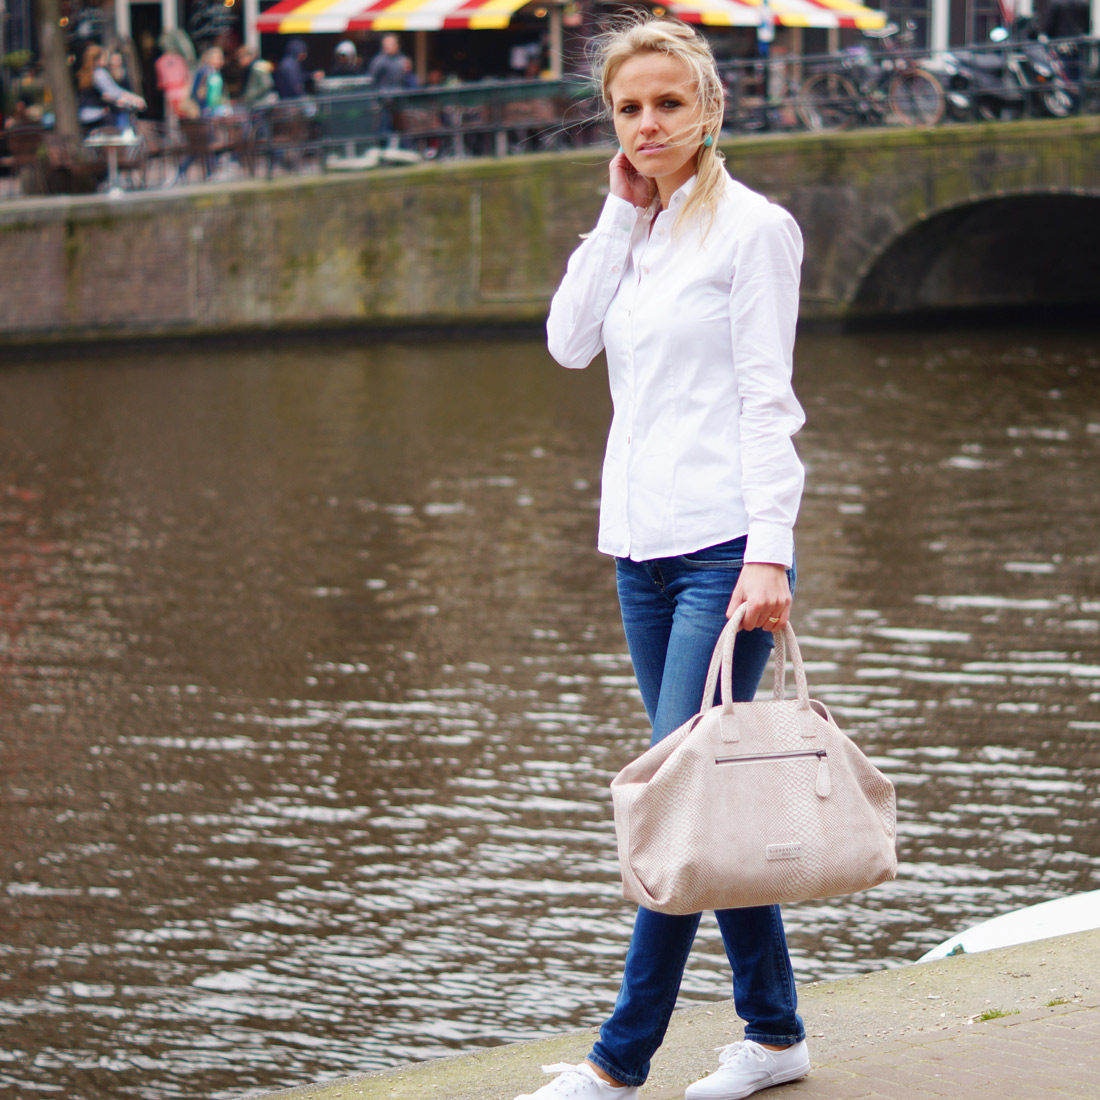 bag-at-you-fashion-blog-liebeskind-berlin-maxime-handbag-streetstyle-amsterdam